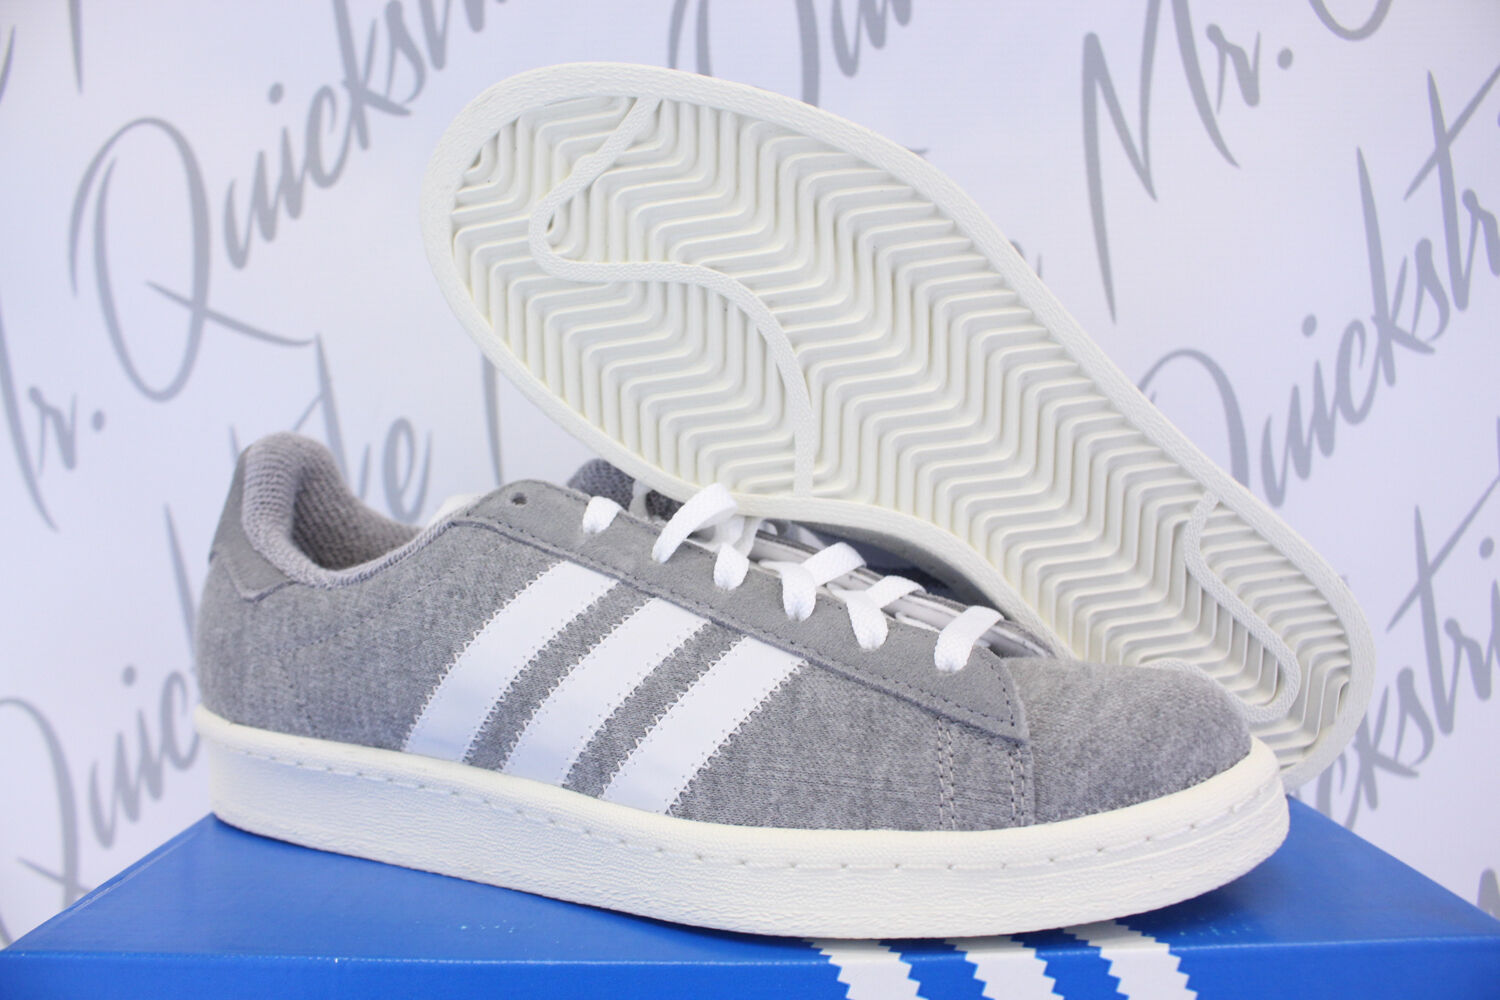 ADIDAS CAMPUS 80'S BW SZ 13 BEDWIN AND THE HEART BREAKERS GREY WHITE S75675 Scarpe classiche da uomo